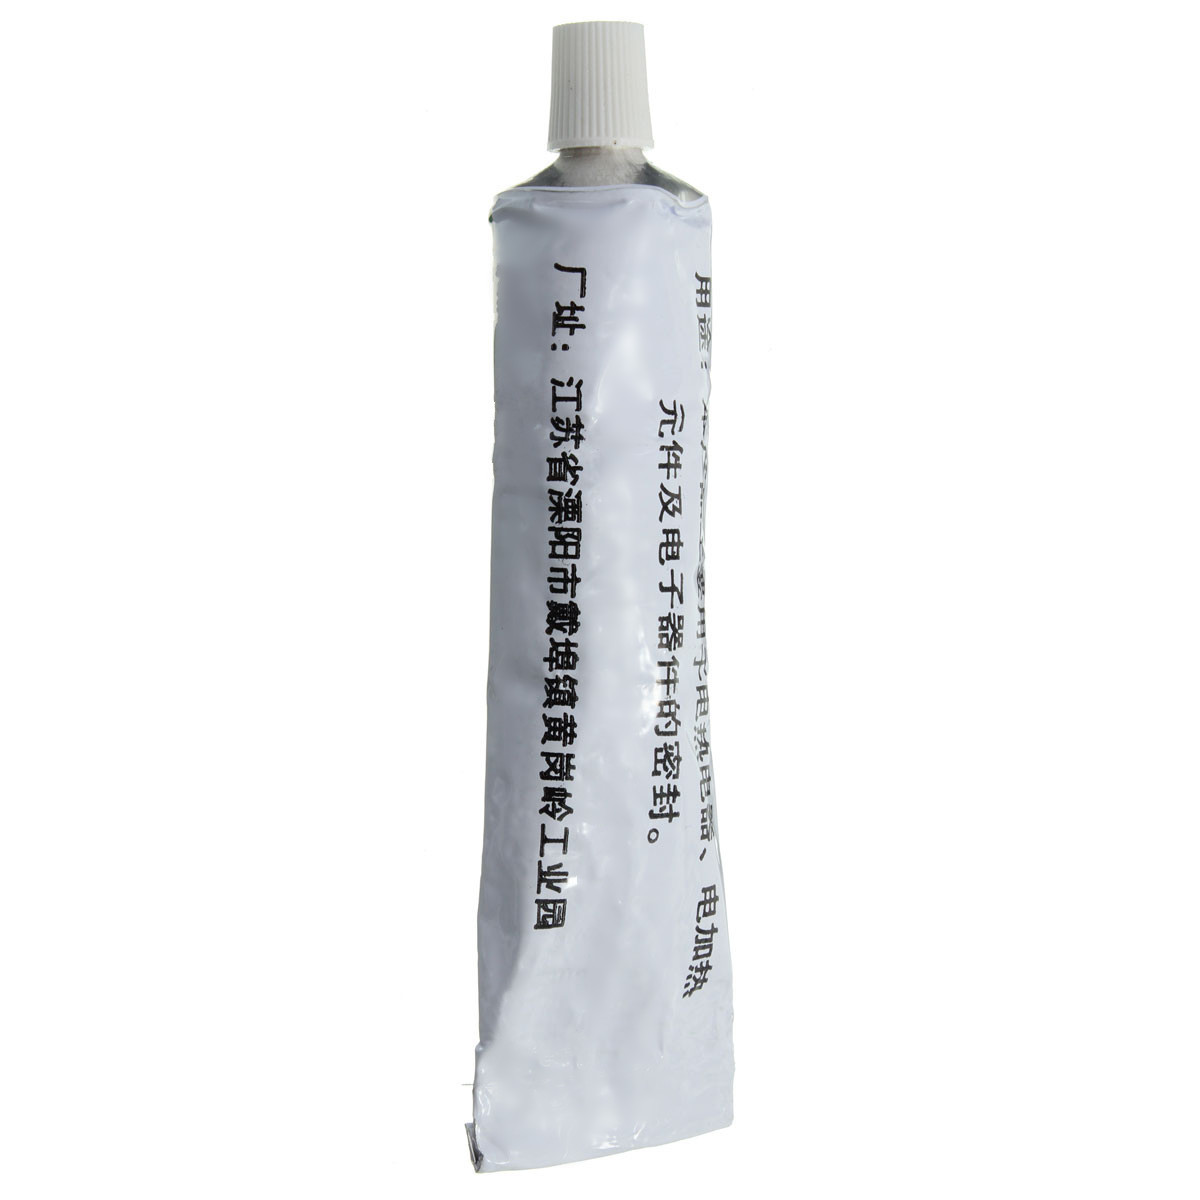 45g High Temperature 704 Electronic Devices Silicone Rubber Adhesive Sealant Glue